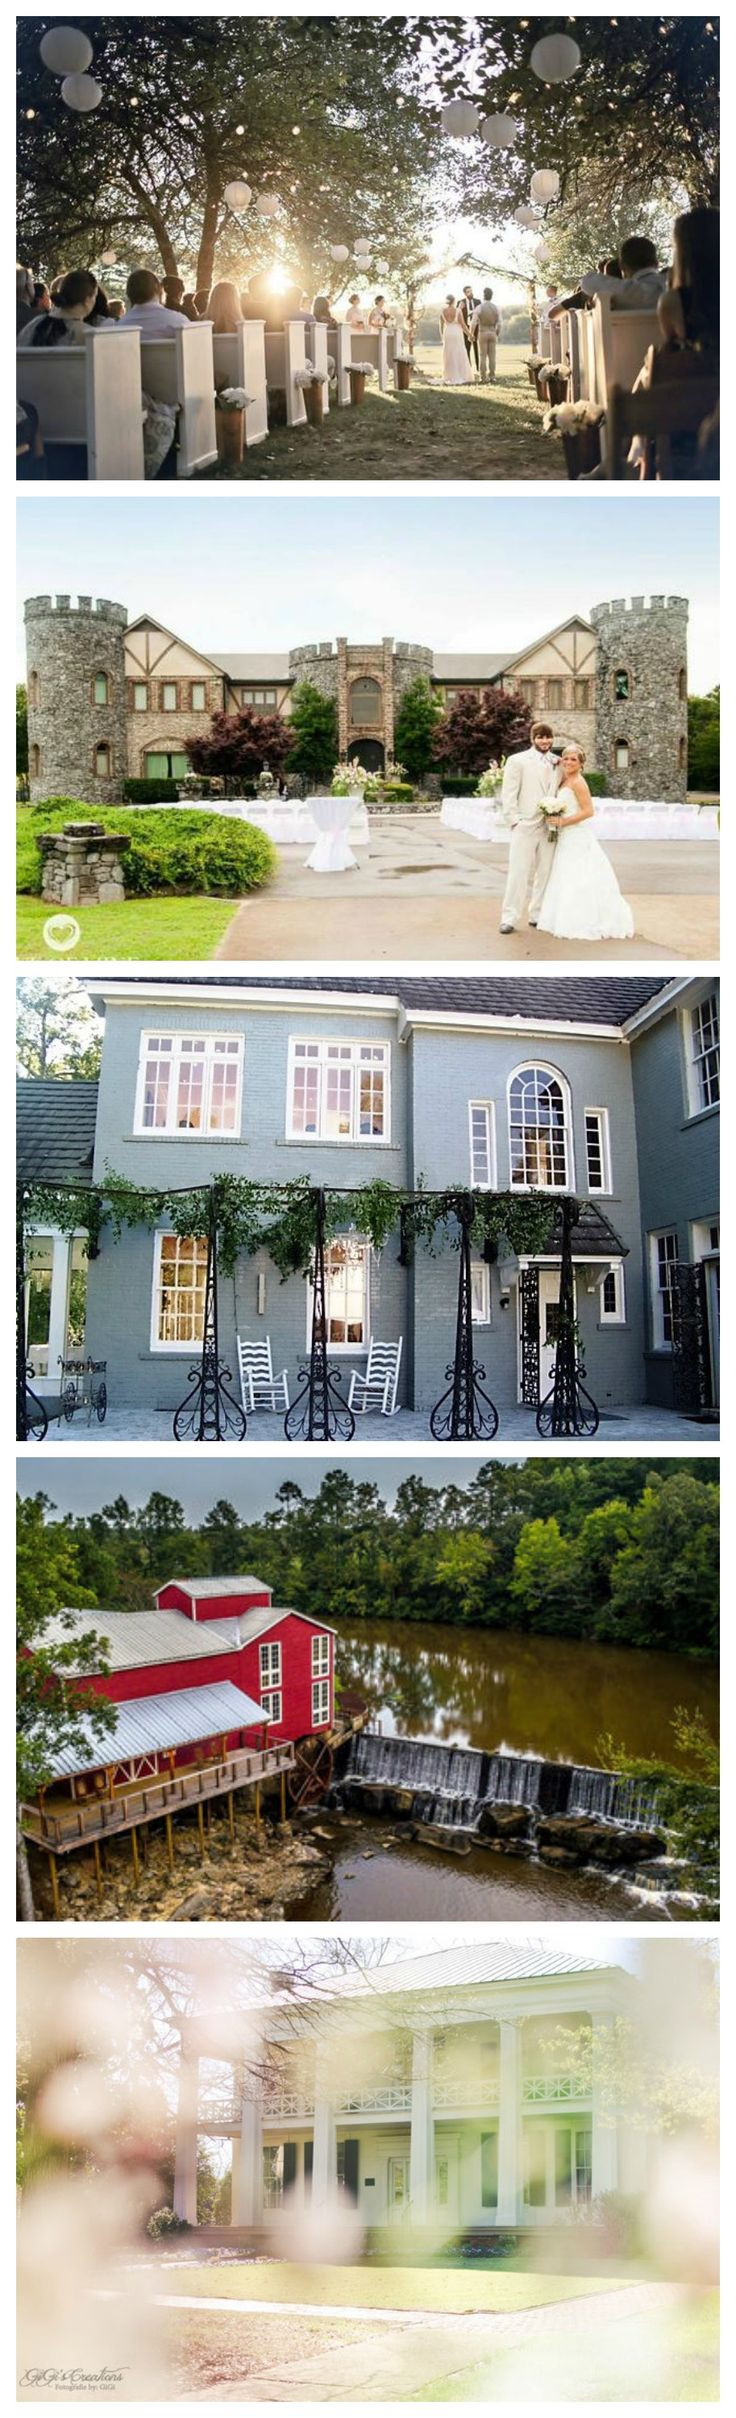 best 25 places to get married ideas on pinterest wedding places